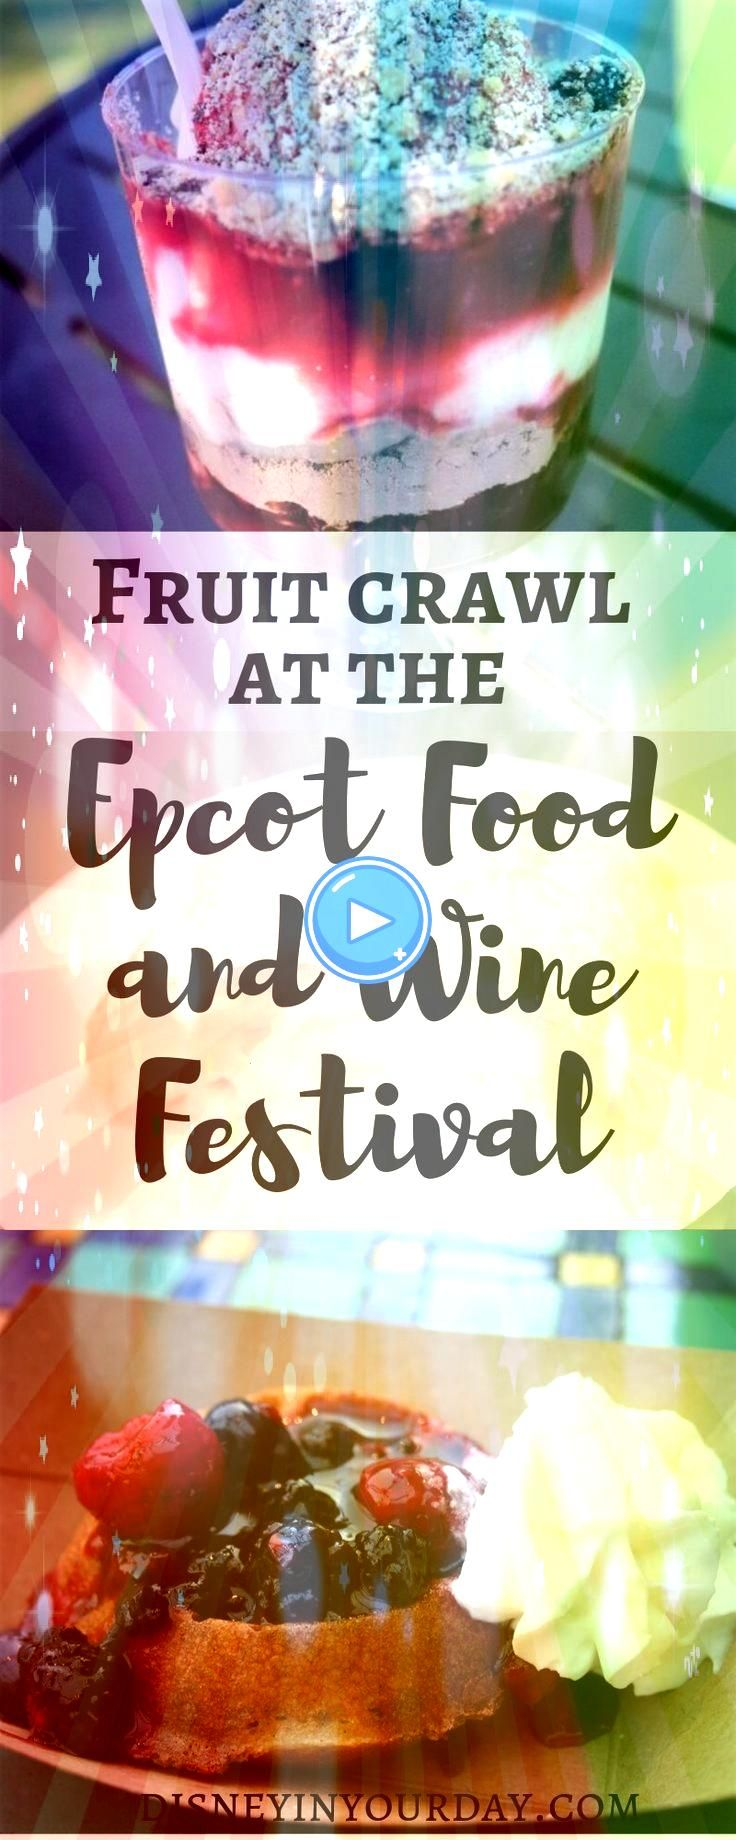 Food and Wine Festival Obst Crawl  Disneyside Epcot Food and Wine Festival Obst Crawl  Disneyside  17 Pioneer Woman Dinner Recipes That Are Quick Easy and Delicious via P...